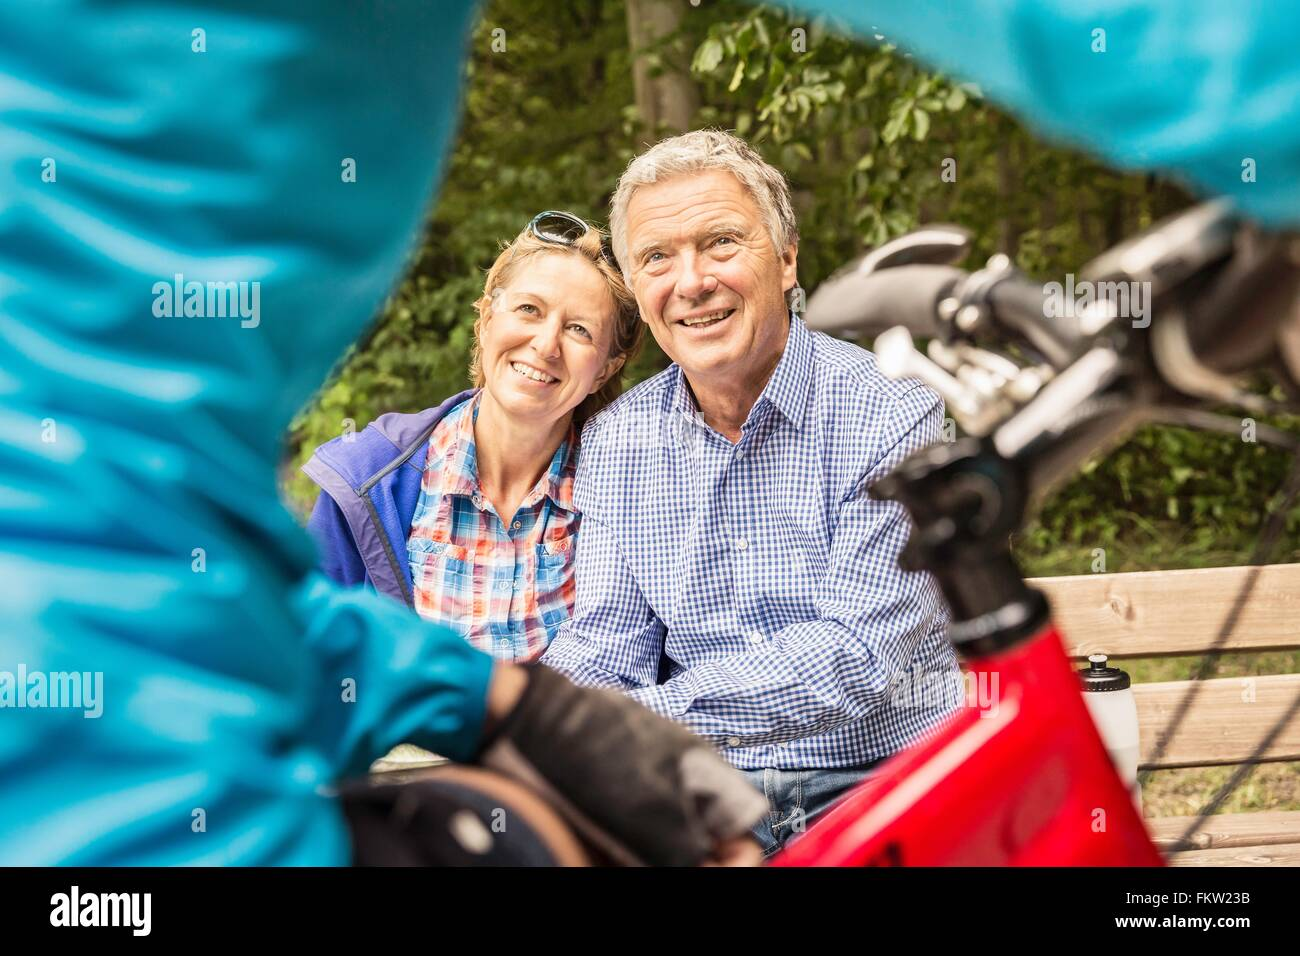 Cropped shot of mountain biker chatting to couple on park bench - Stock Image